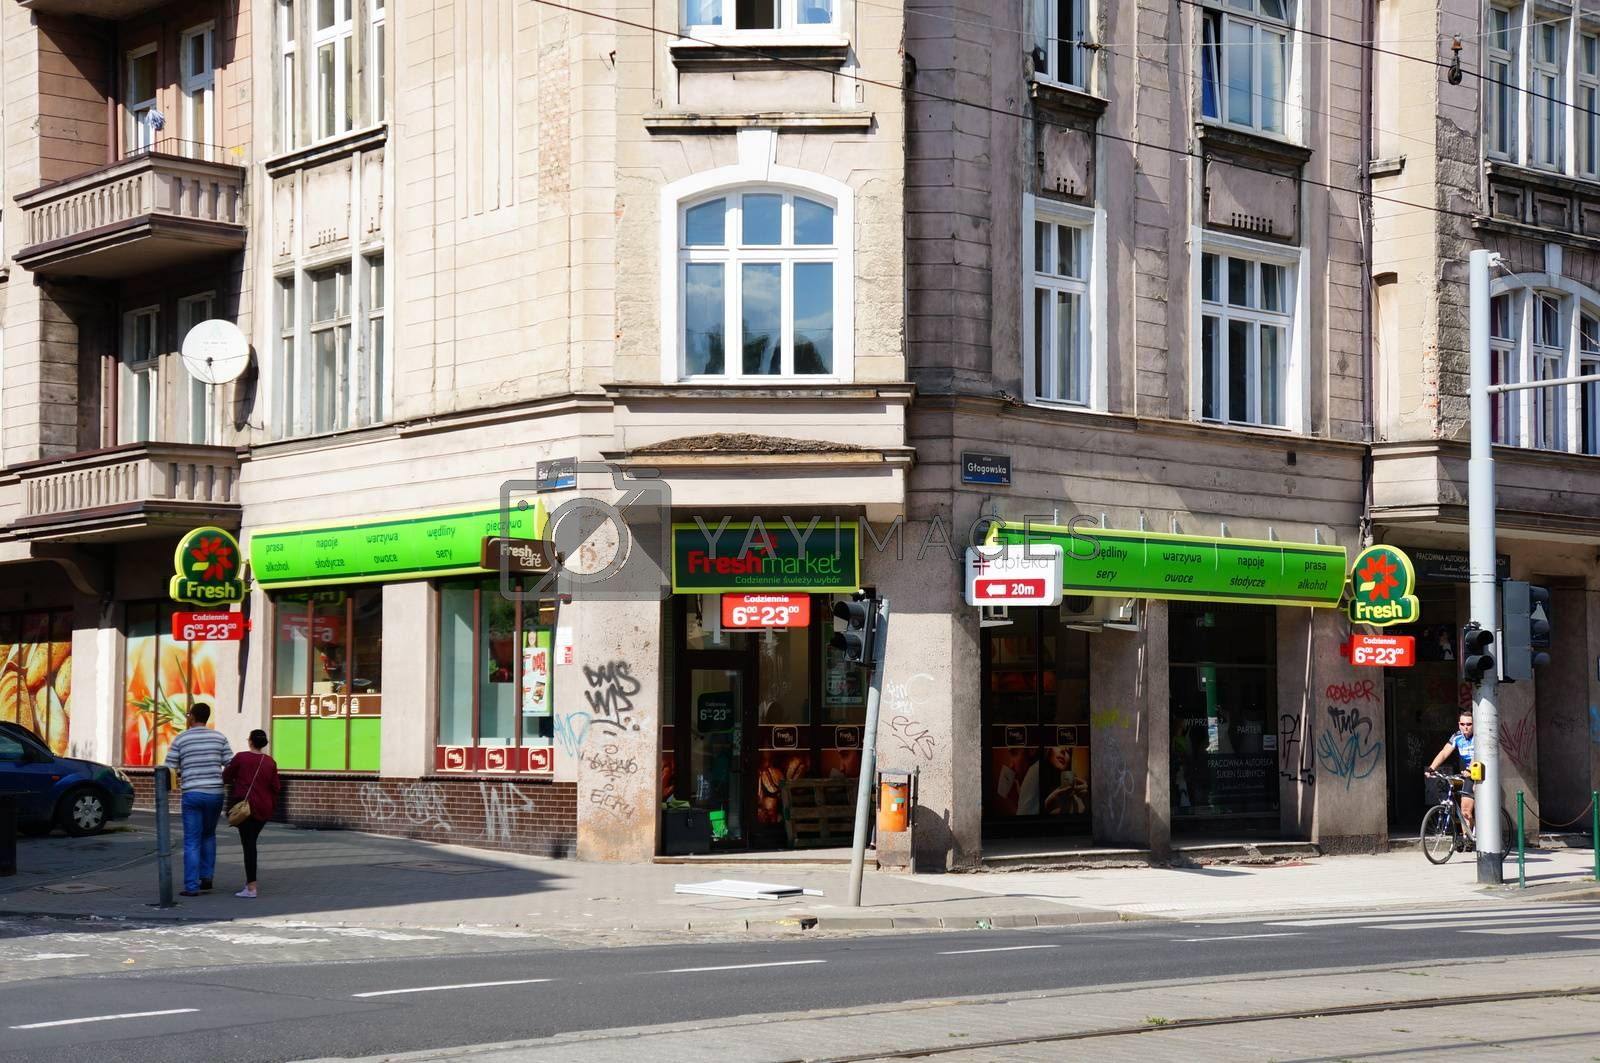 POZNAN, POLAND - AUGUST 25, 2013: Small store at a corner of the Glogowska street